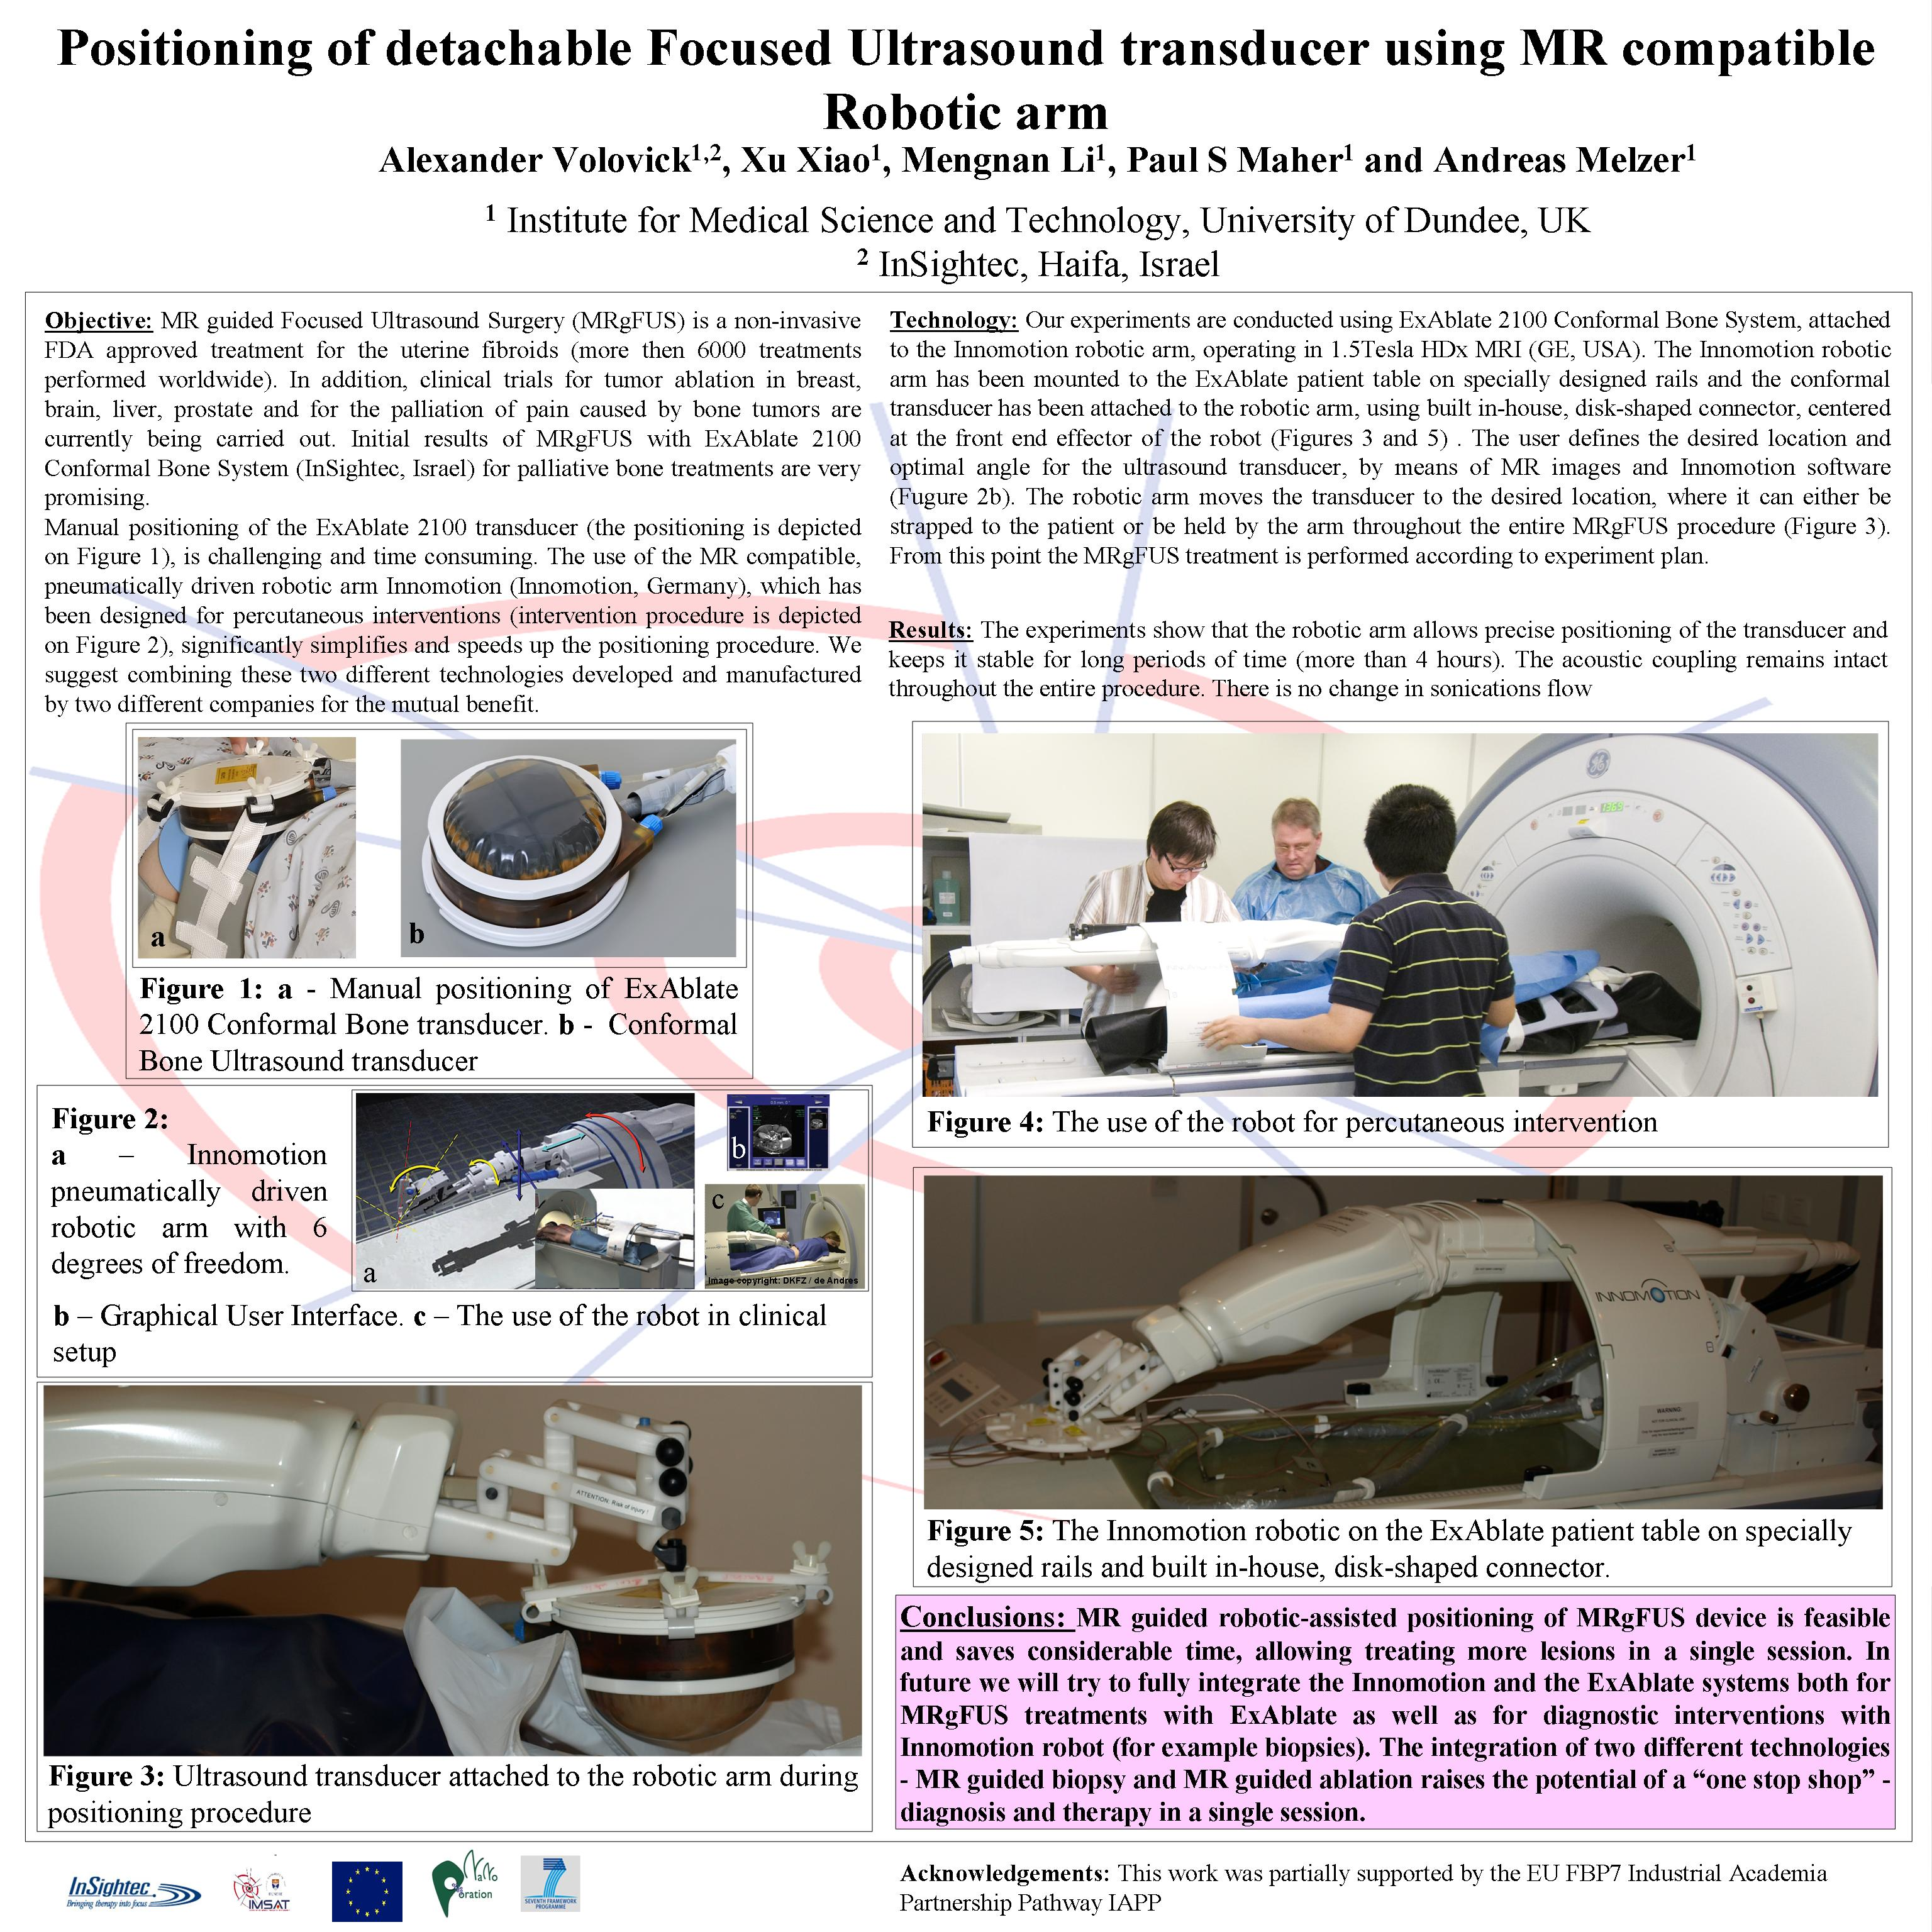 Positioning of Focused Ultrasound Transducer Using Mr